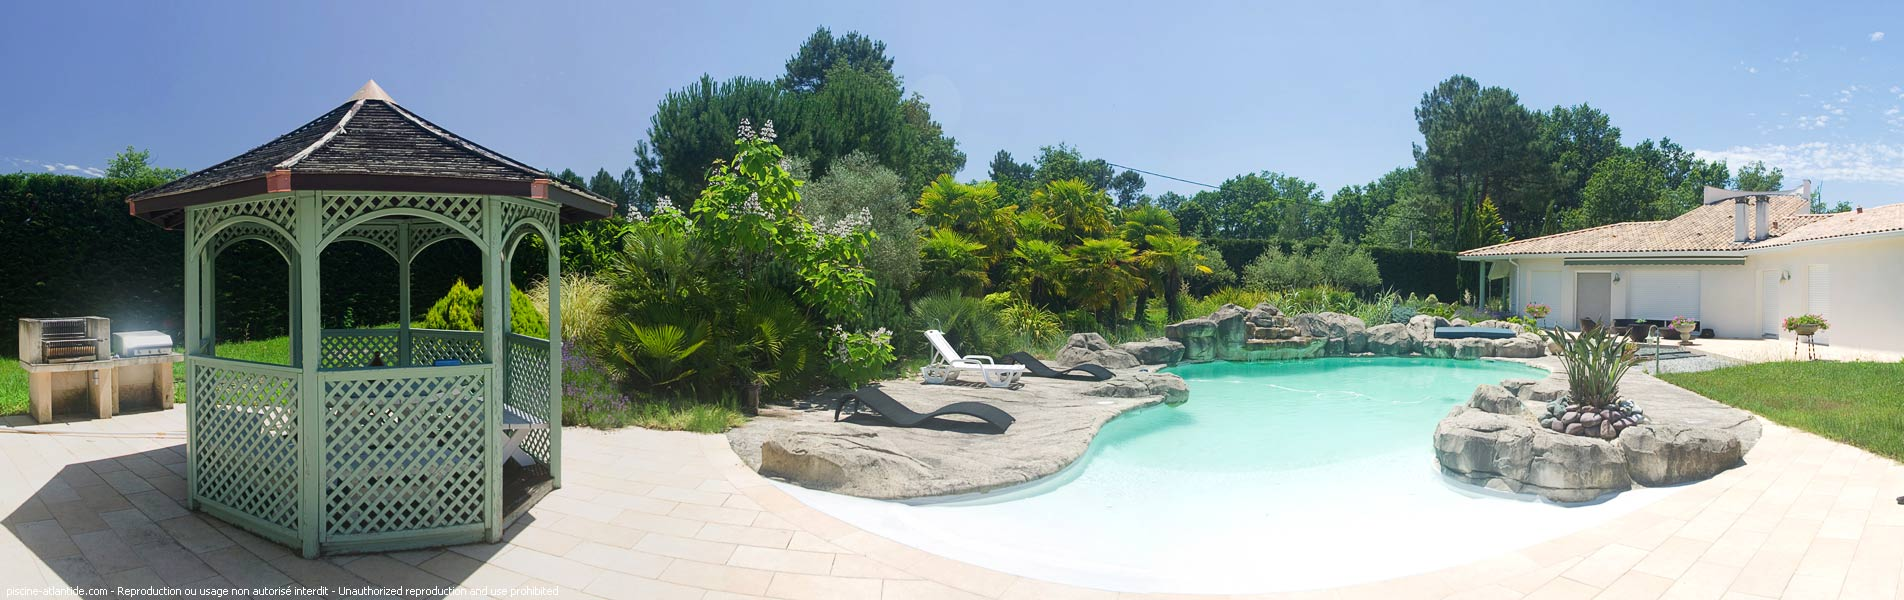 Cash piscine langon location vacances gte barsac with for Cash piscine avis